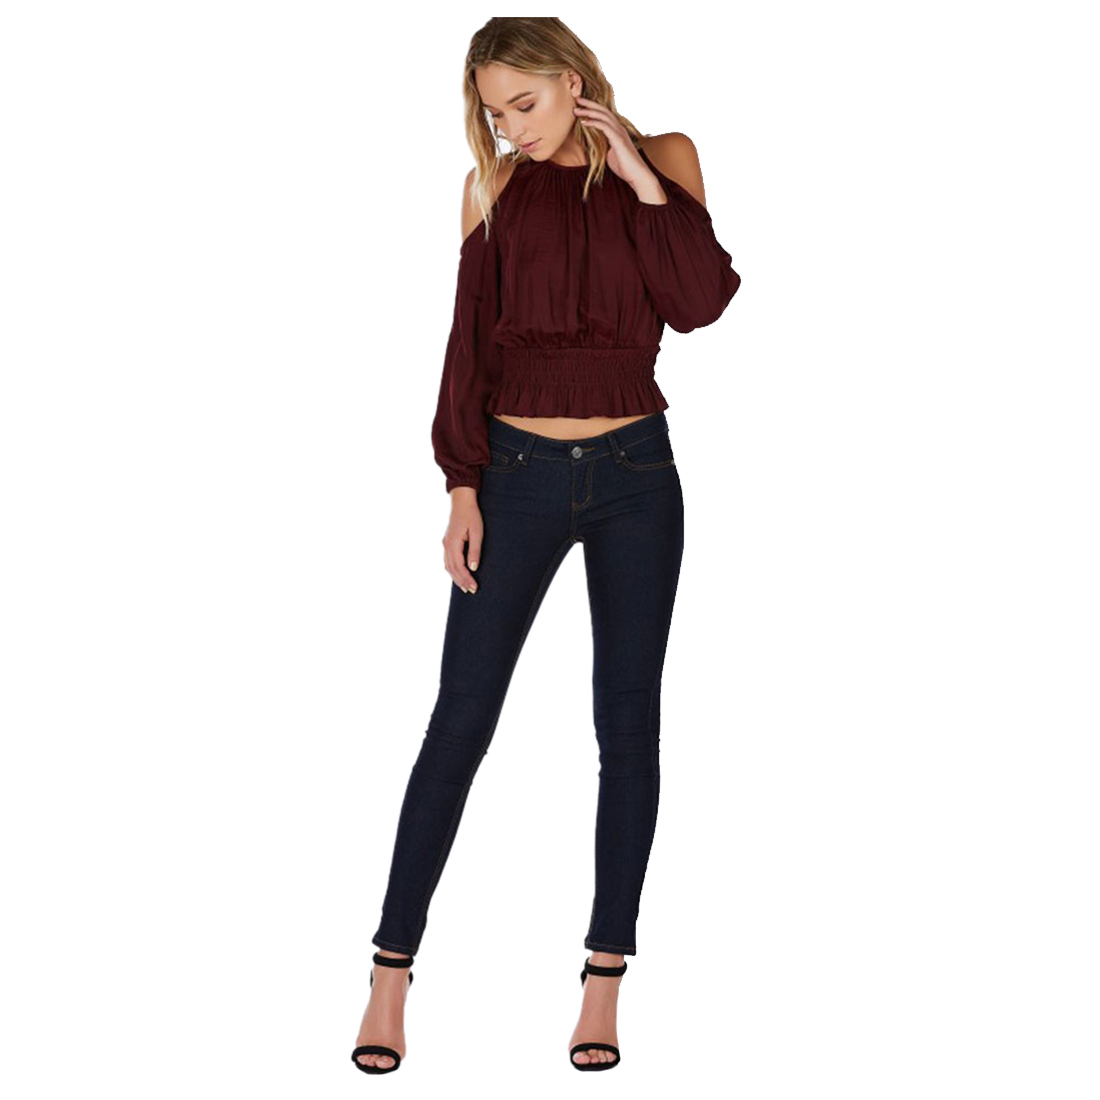 Hot Womens New Fashion O Neck Shirts Summer Style Ladies Sexy Off Shoulder Blouse Casual Slim Long Sleeve Tops Blouses(Win